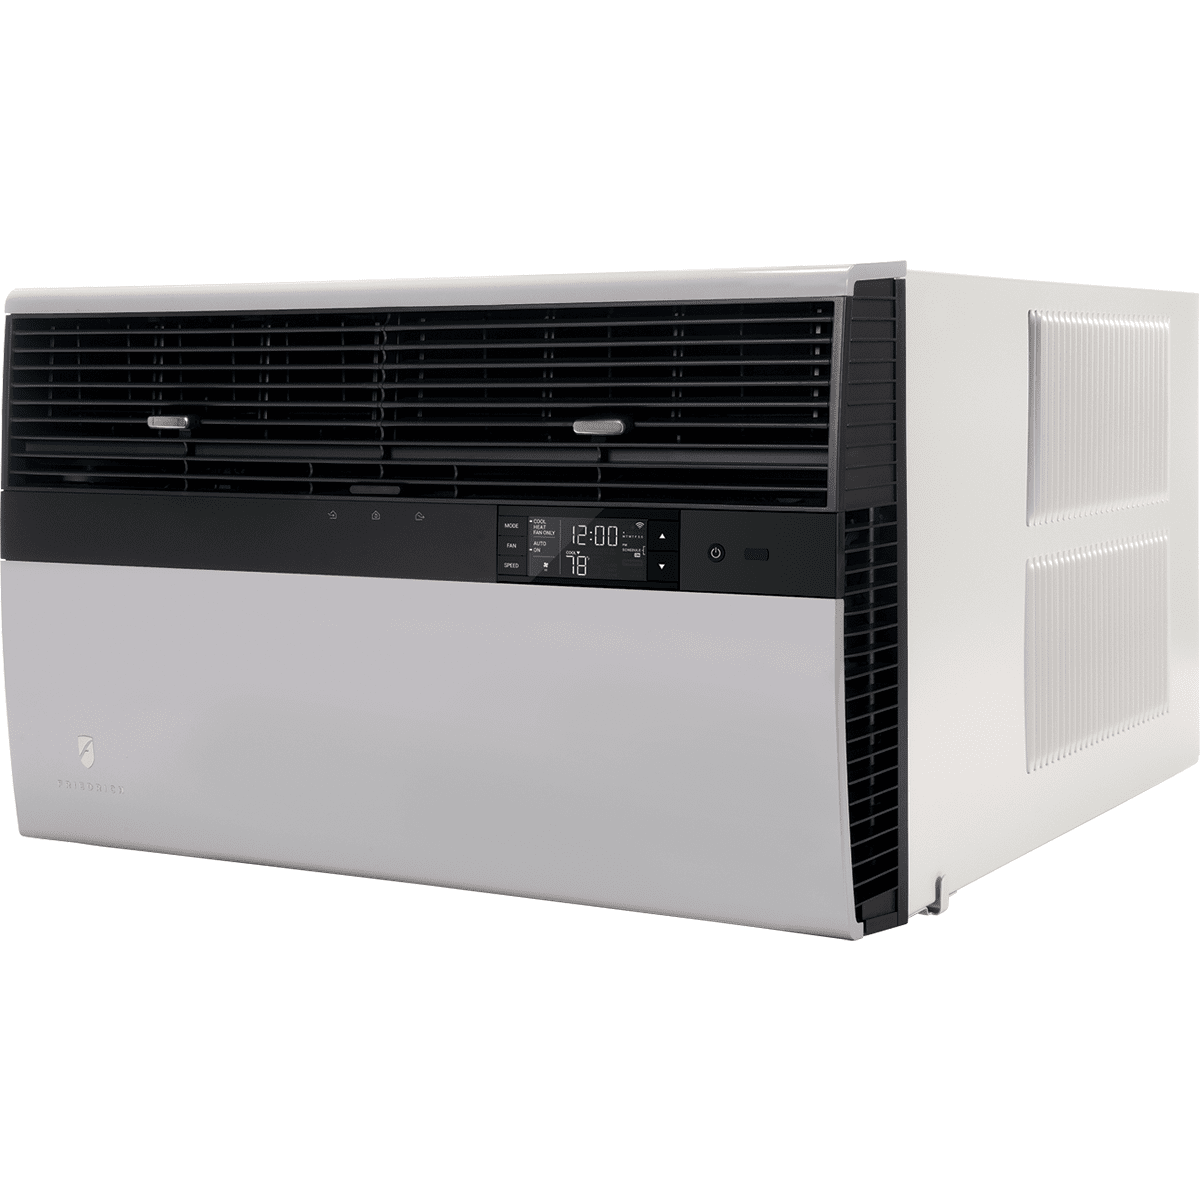 Friedrich Kuhl 18,000 BTU Window Air Conditioner